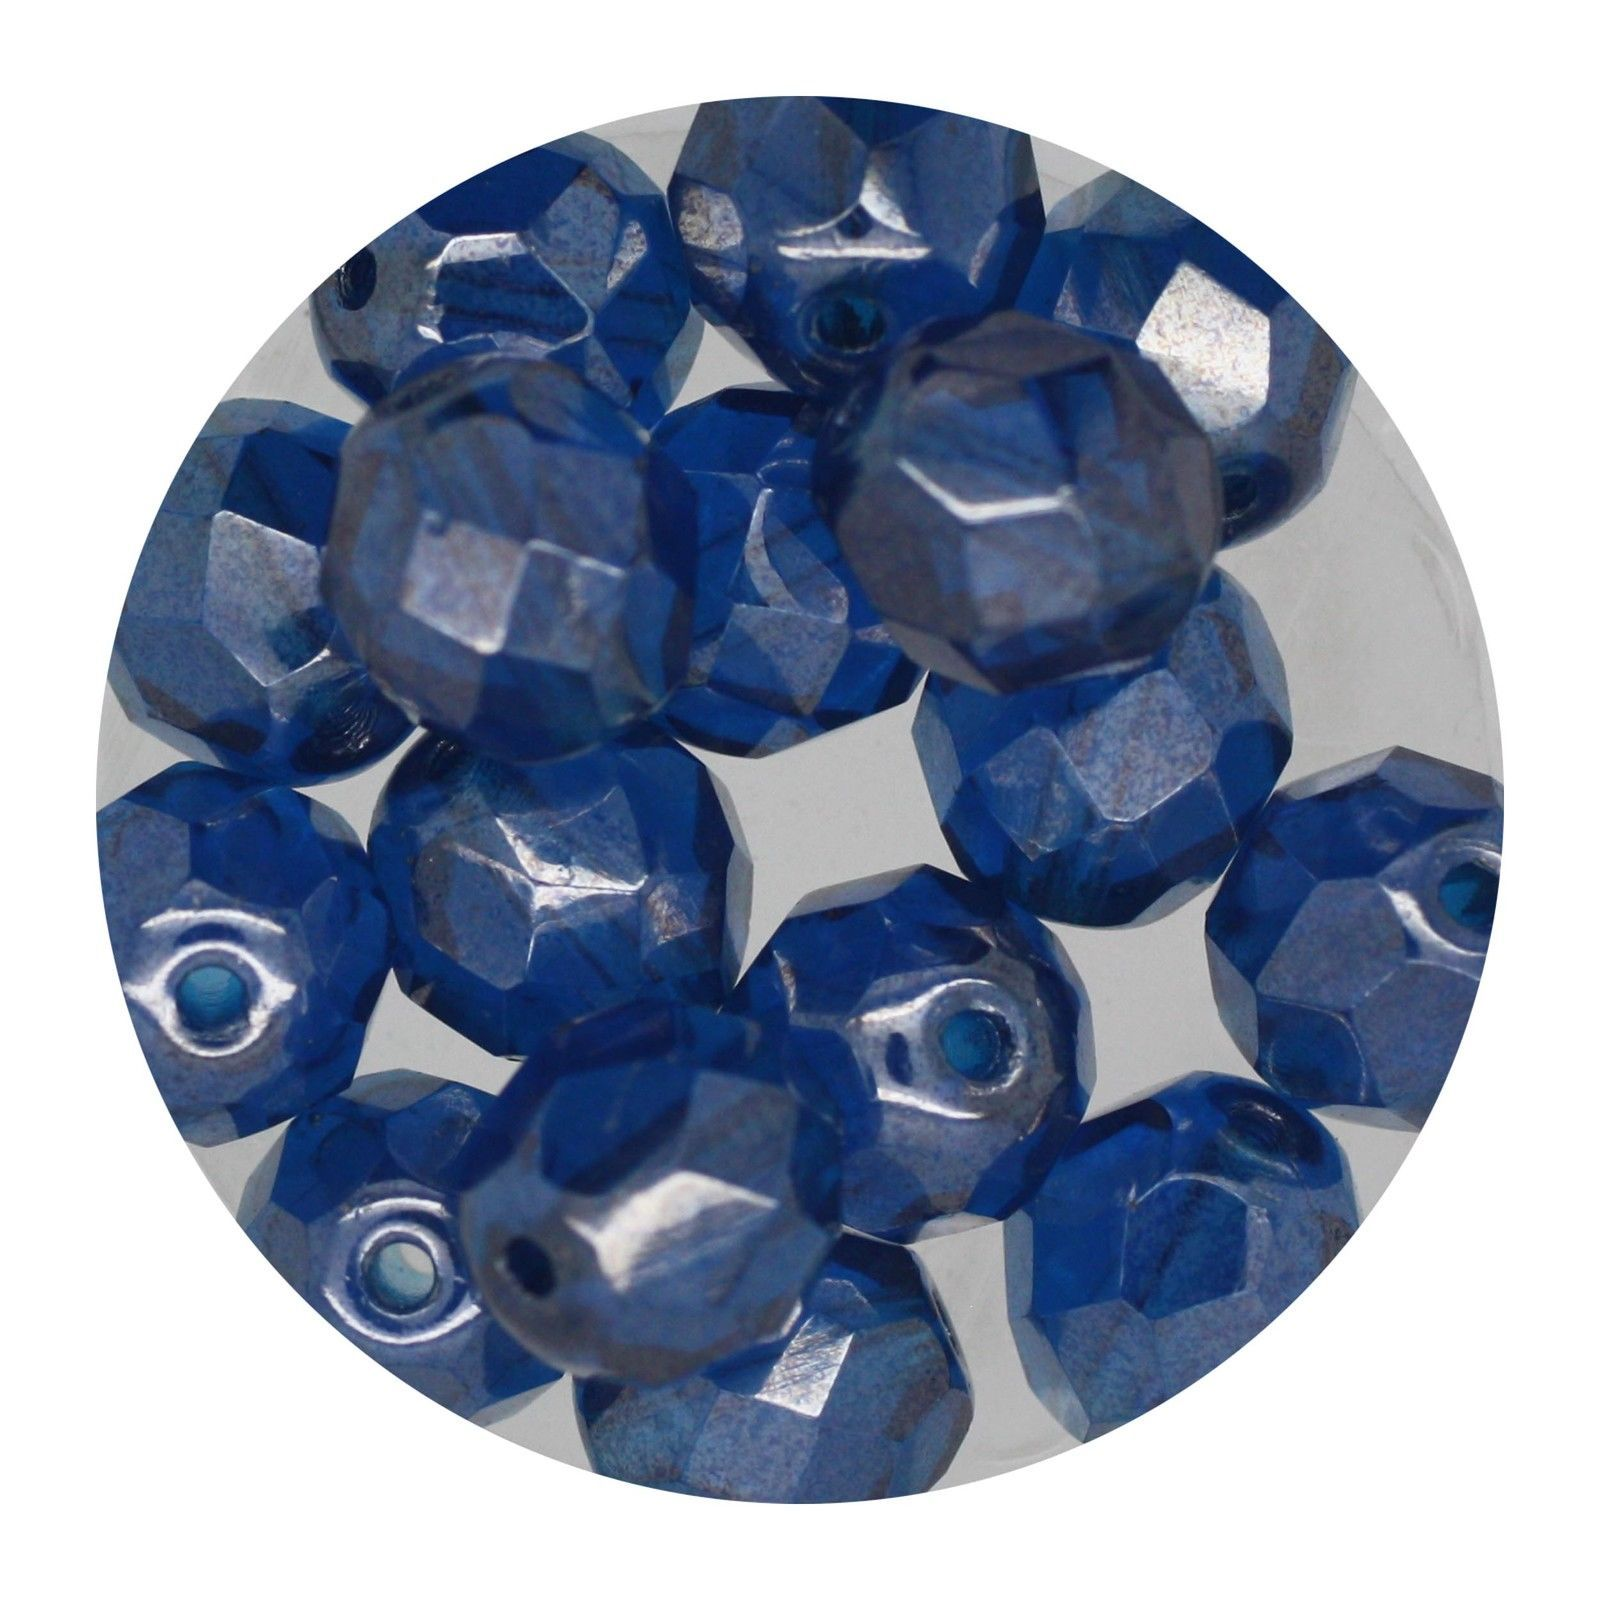 Primary image for Faceted Fire Polish Beads Czech Glass 8mm Luster Capri